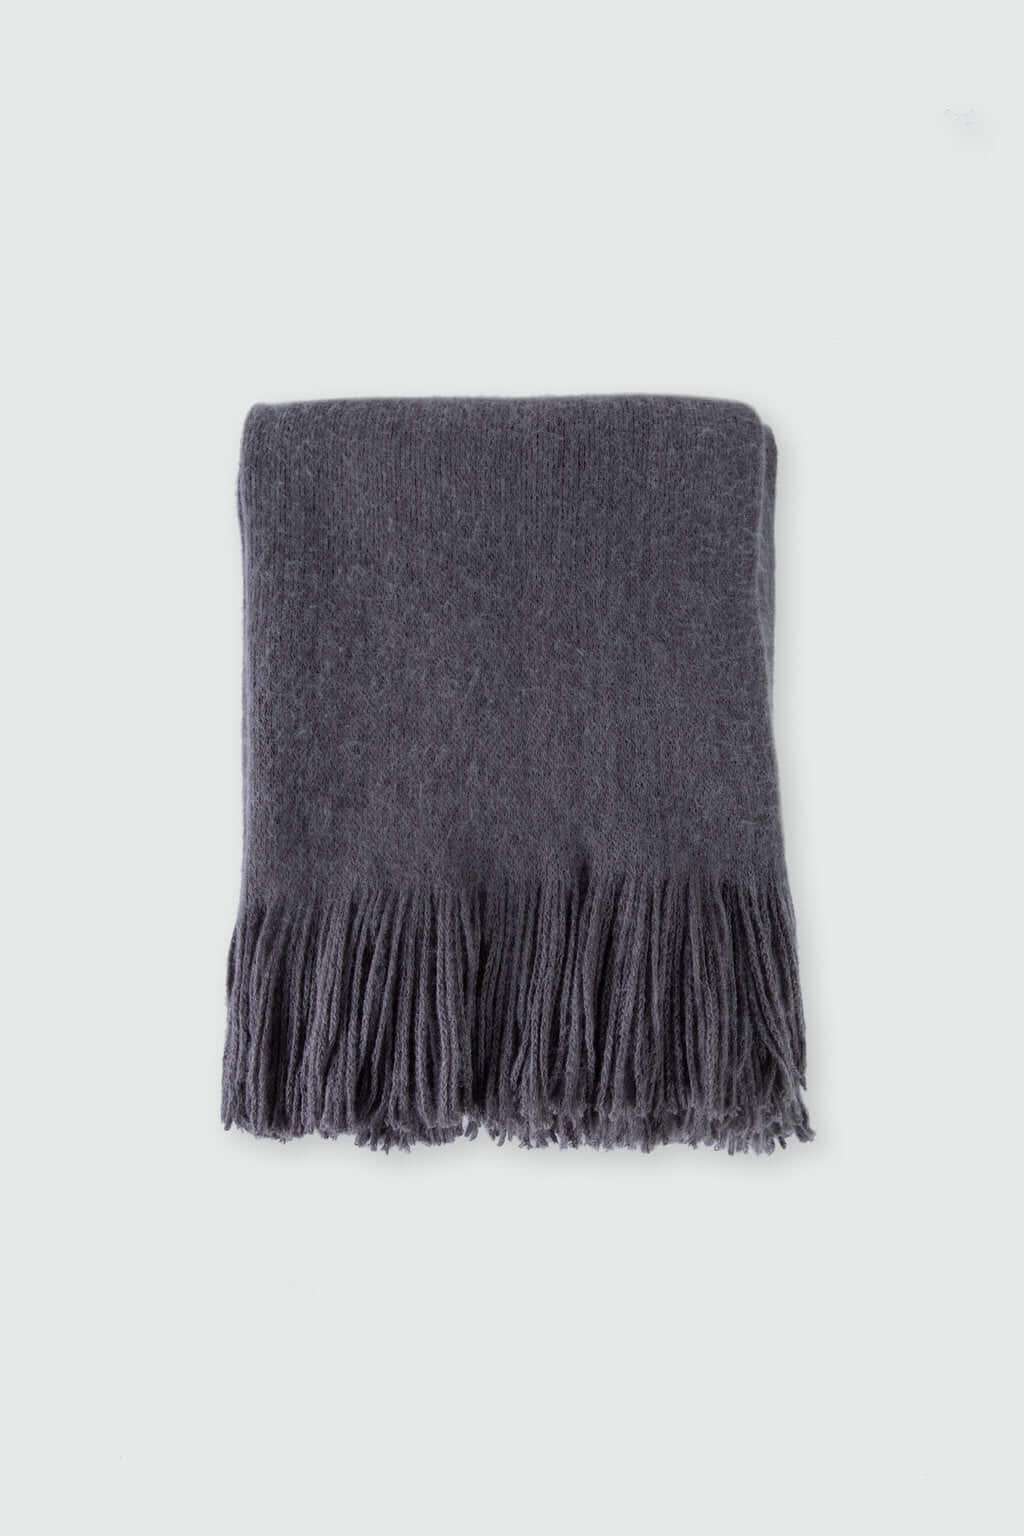 Scarf J001 Dark Gray 8